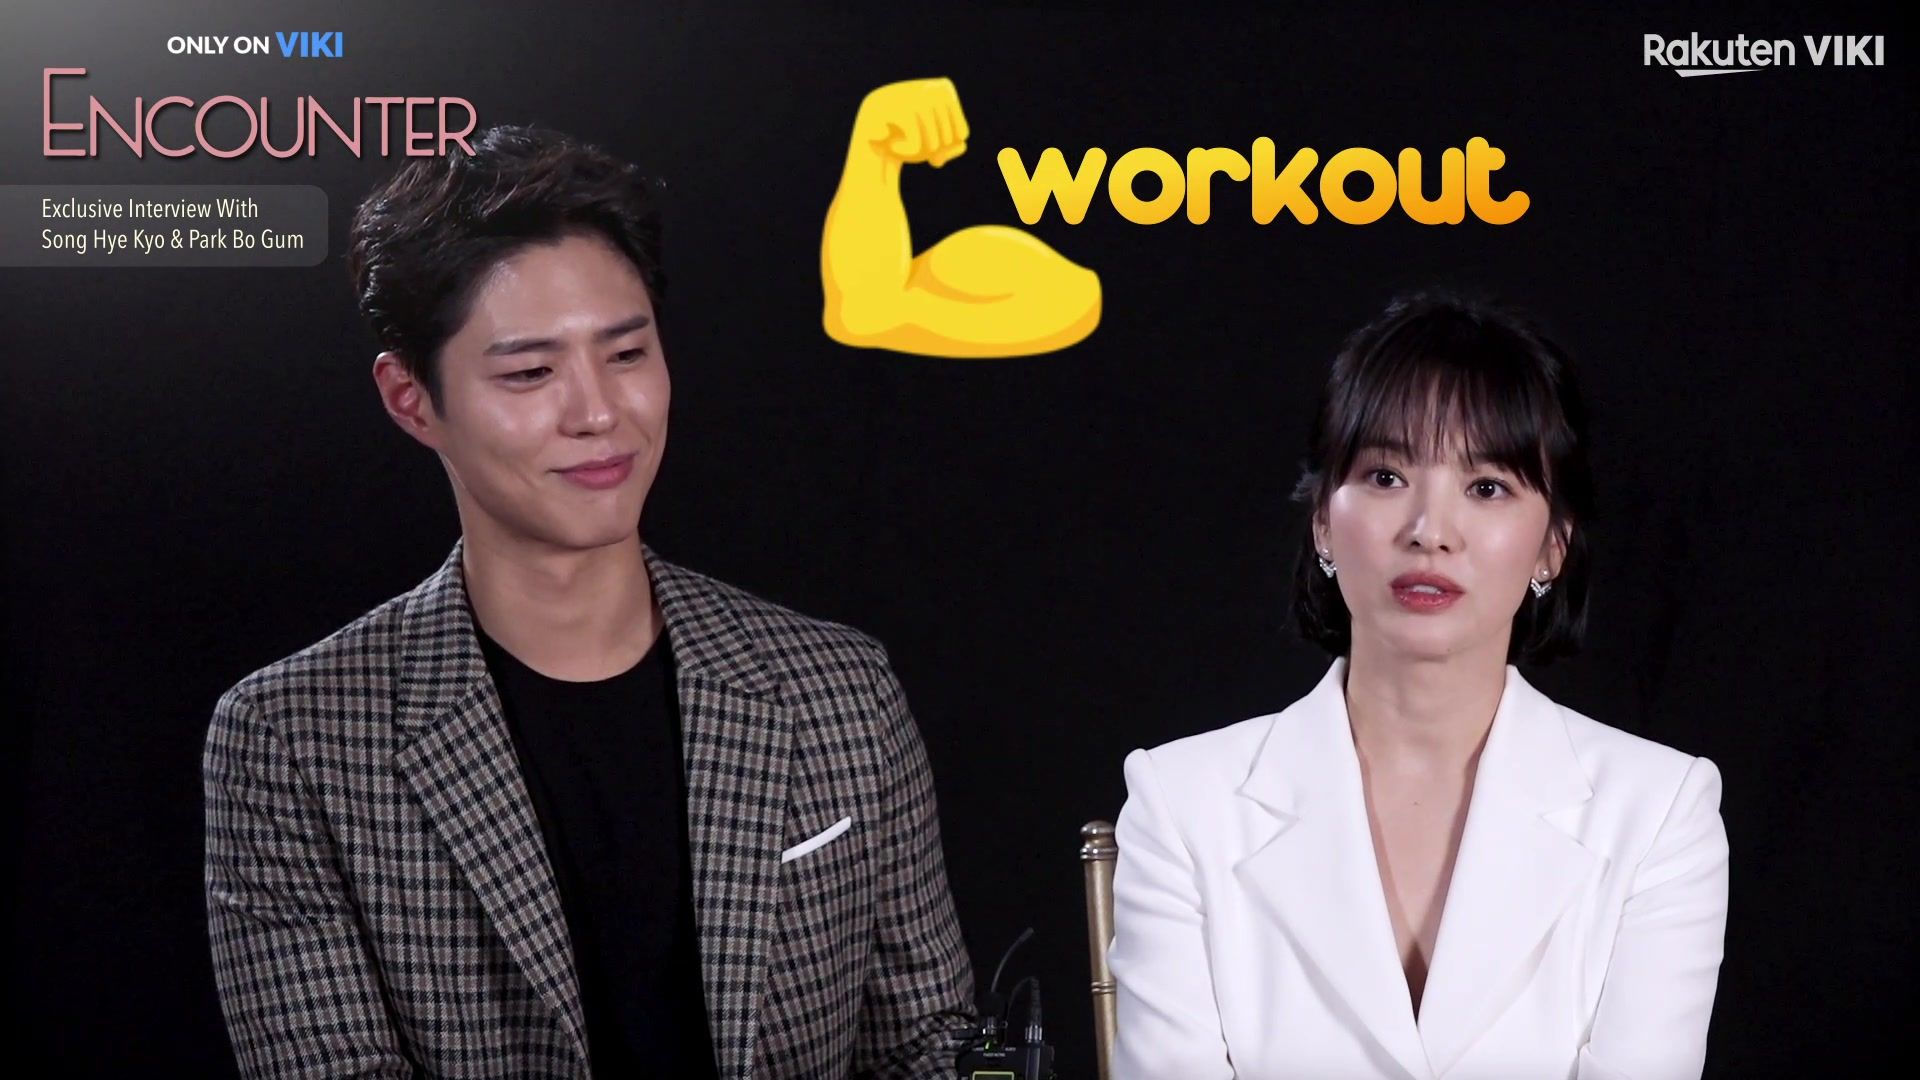 Exclusive Interview With Park Bo Gum and Song Hye Kyo: Encounter